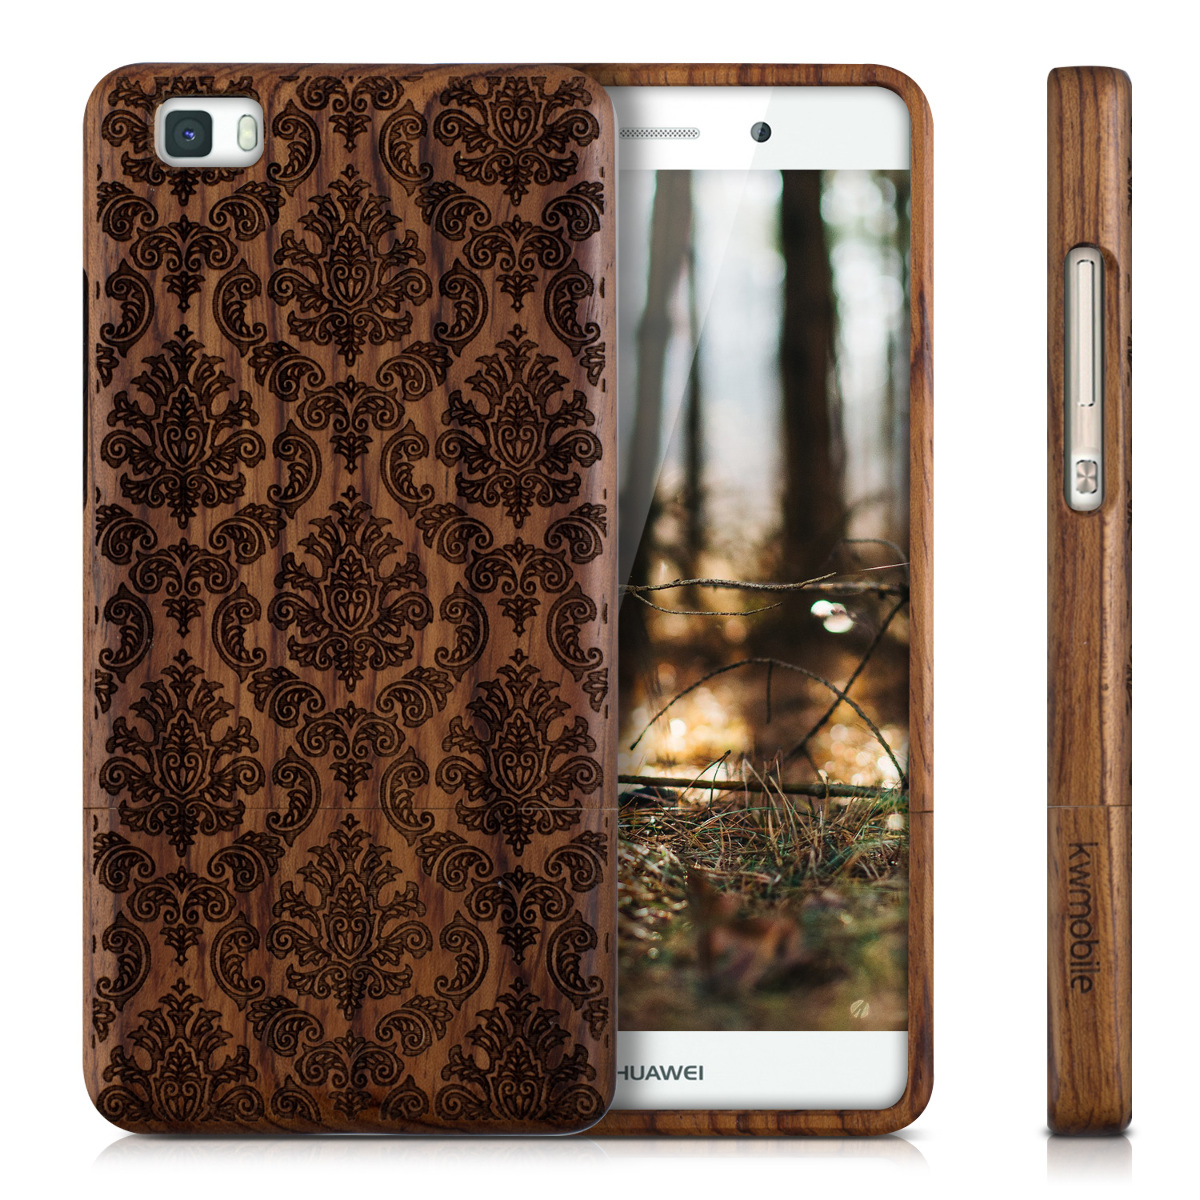 WOOD-COVER-FOR-HUAWEI-P8-LITE-2015-CASE-BACK-HARD-NATURAL-MOBILE-PHONE